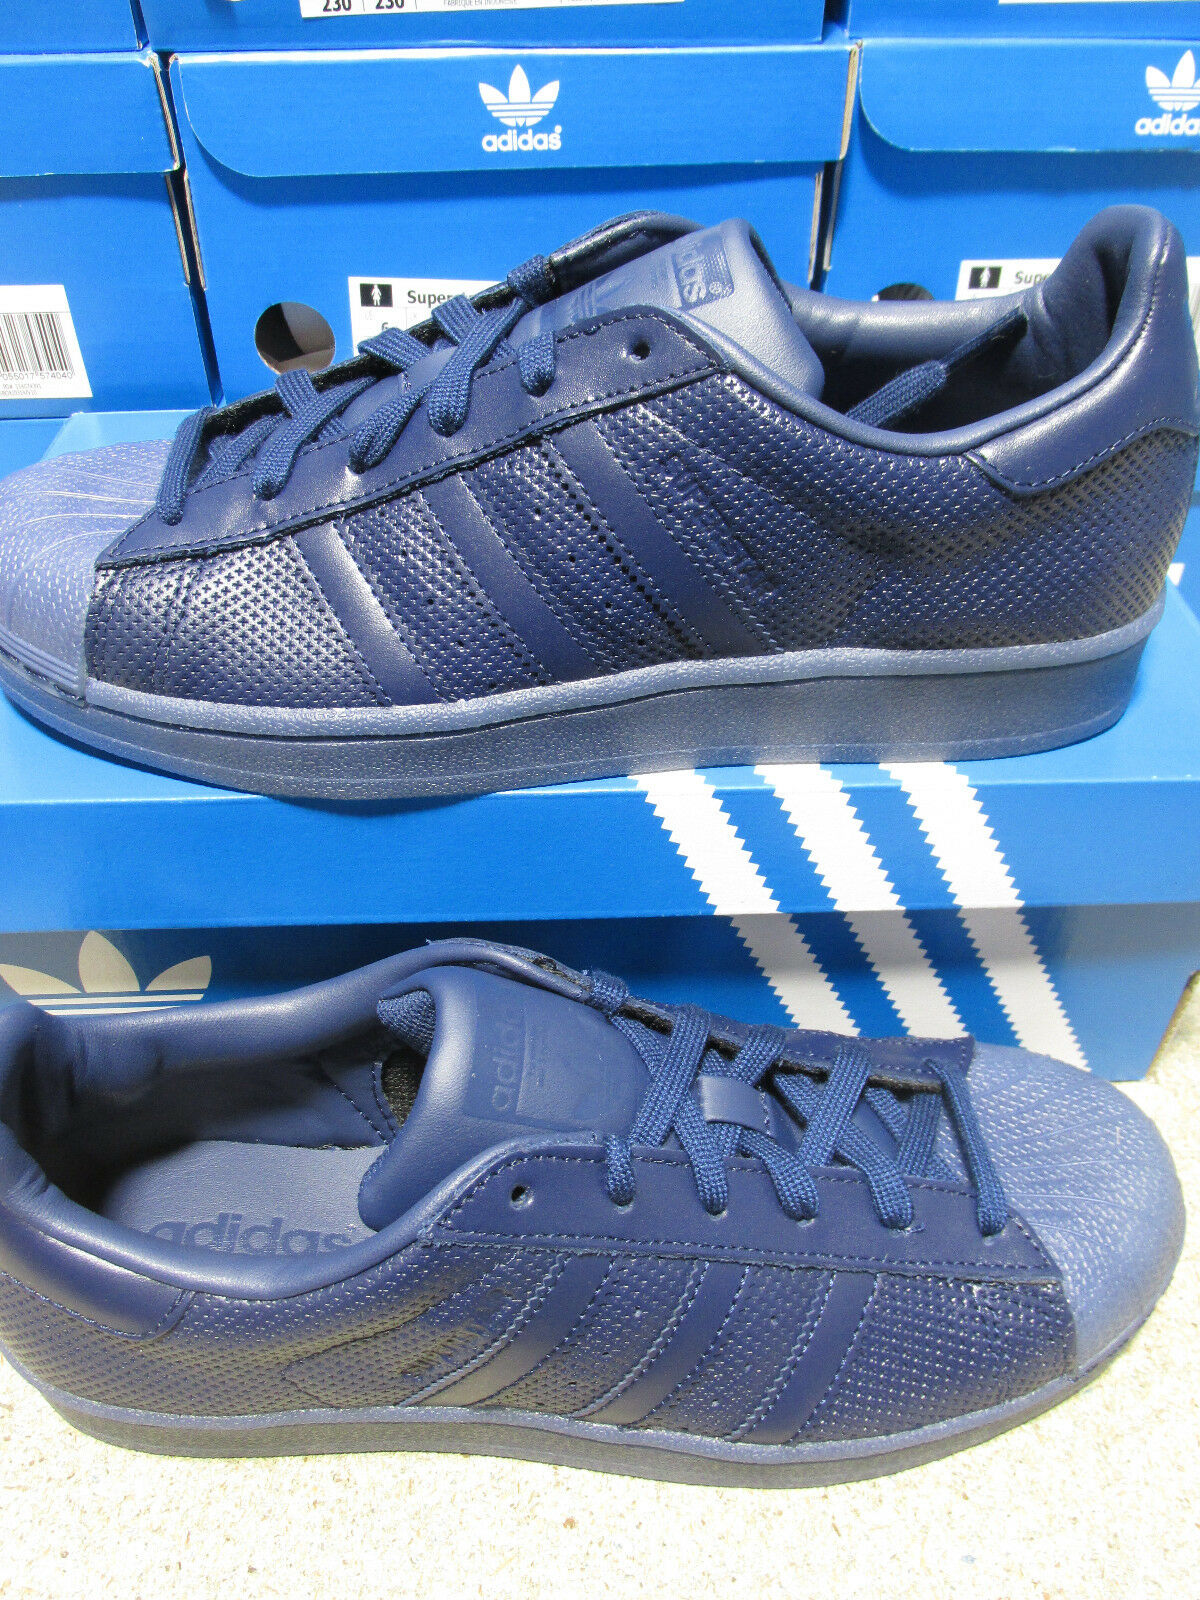 Adidas Originaux Originaux Originaux Superstar Baskets Hommes BB4267 Baskets 20b0f3